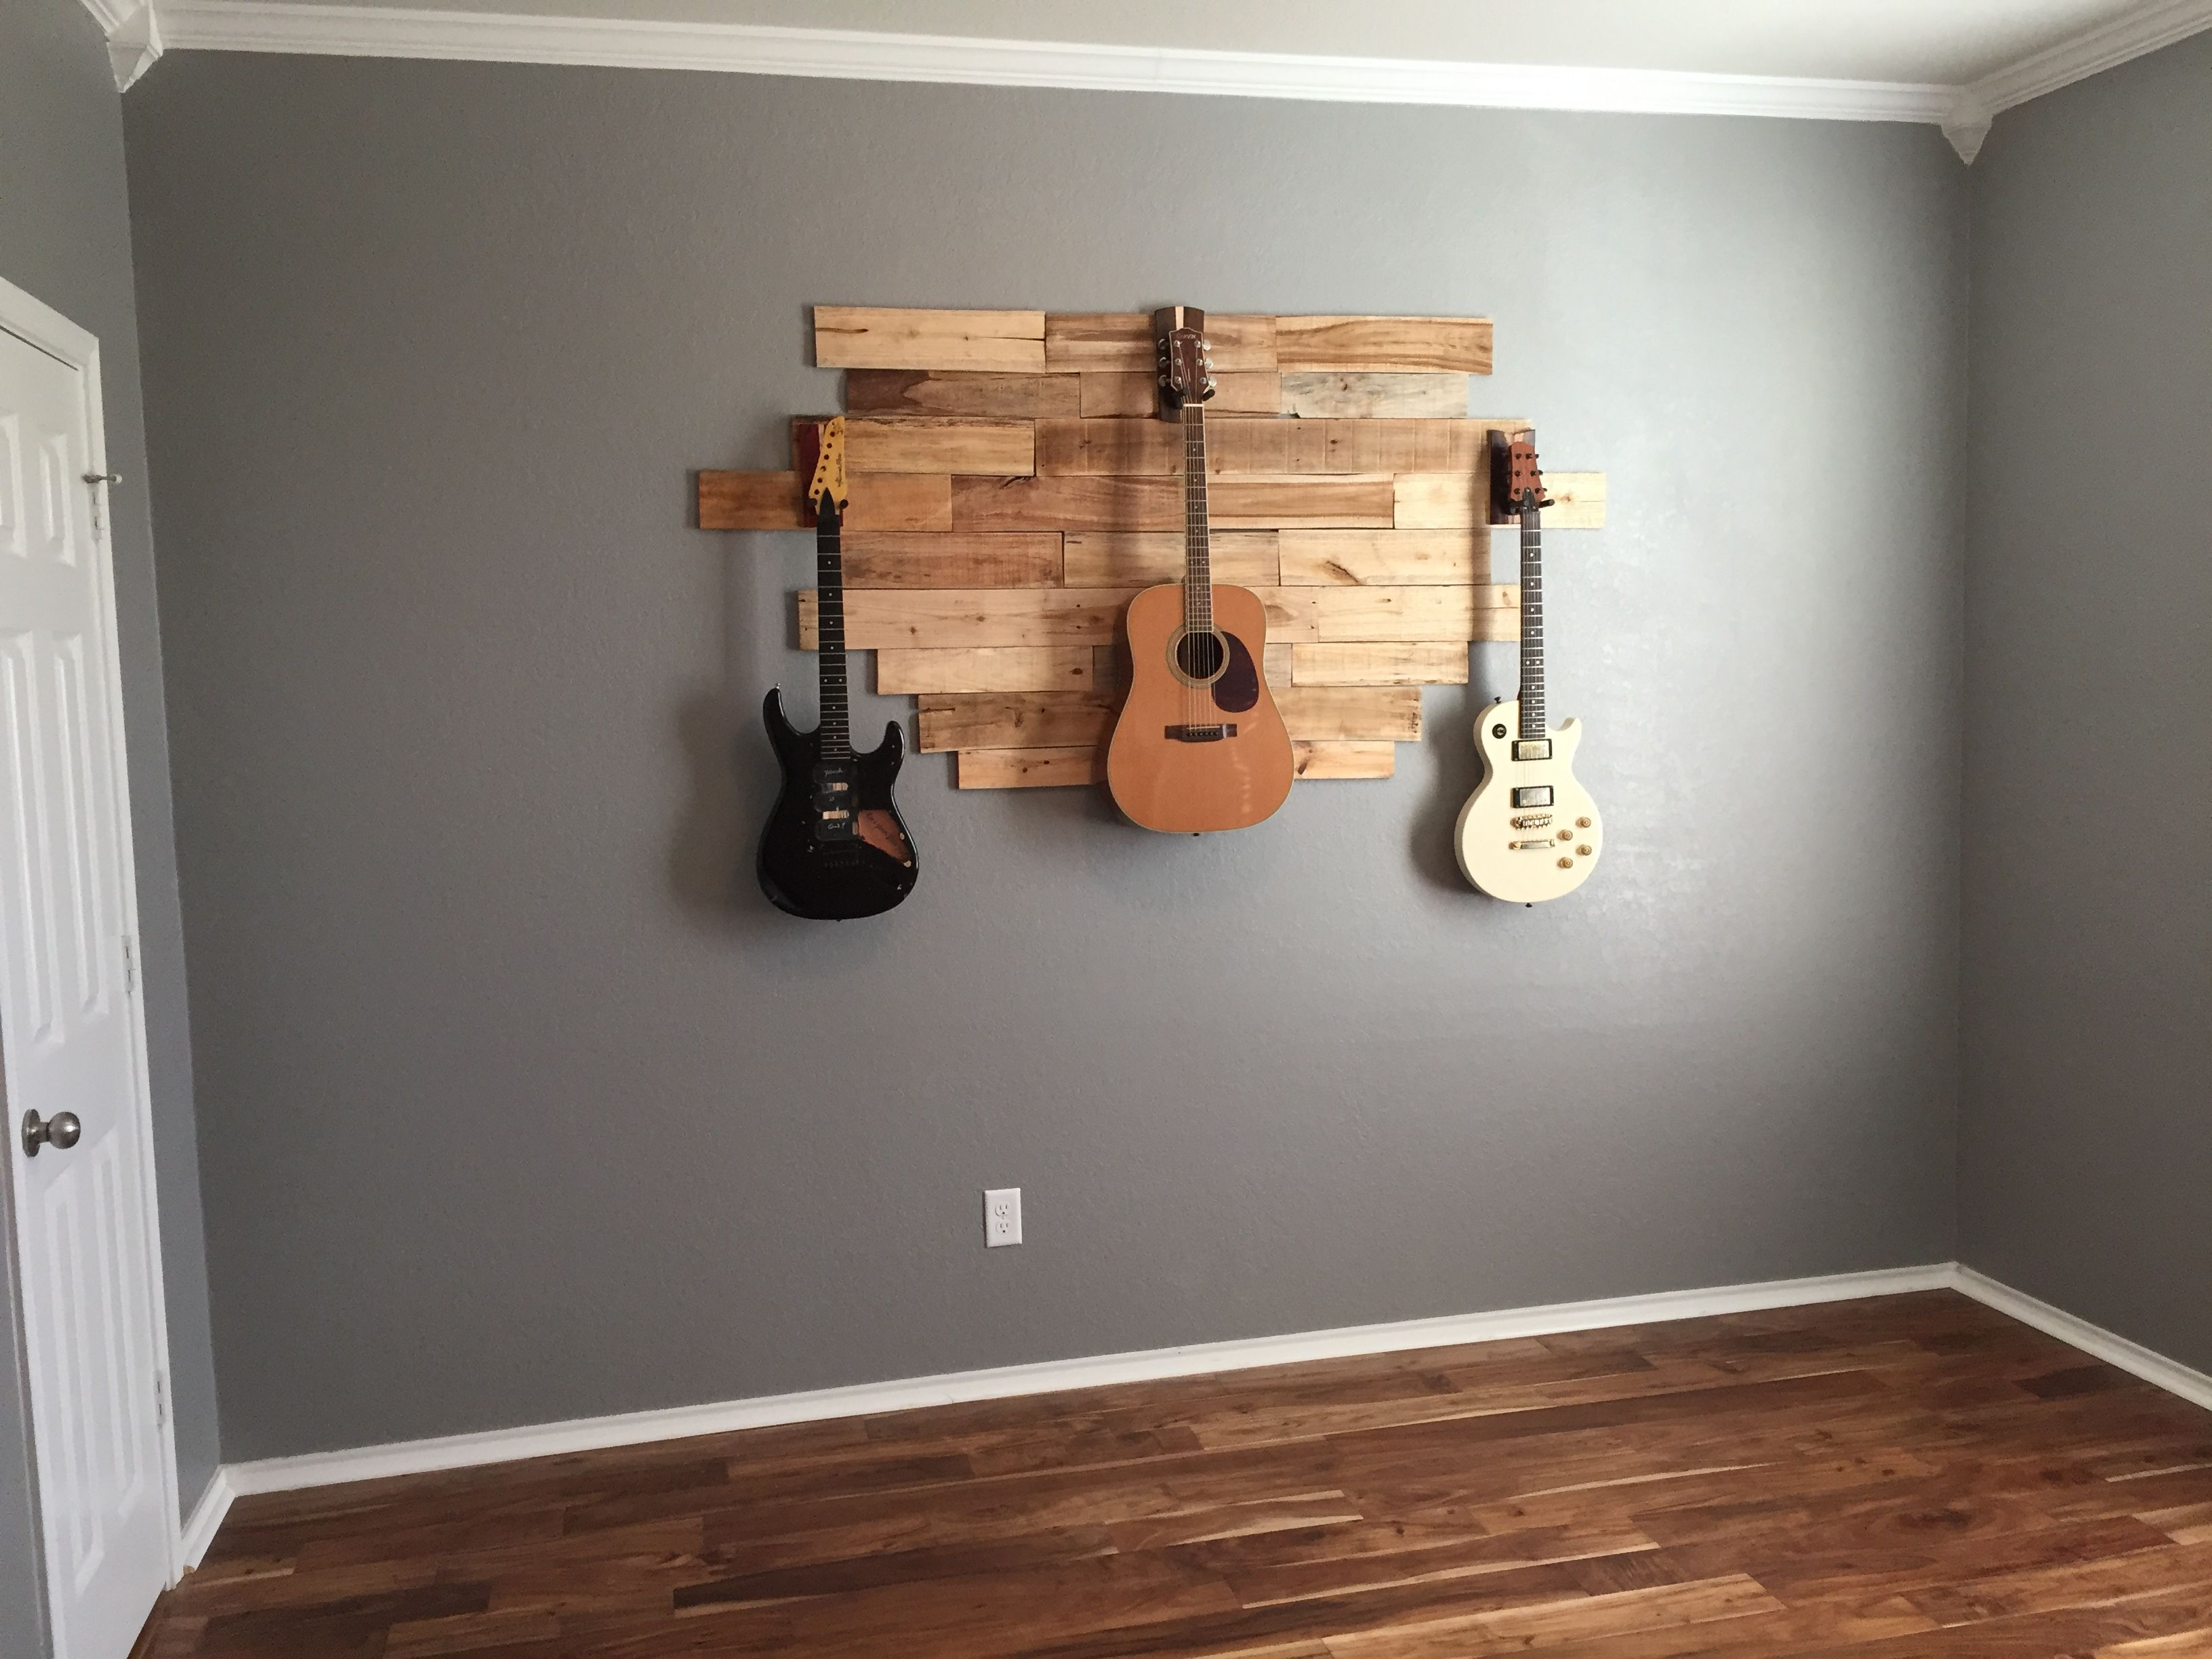 Hang Guitar On Wall guitar display wall. i transformed this wall and added spotlights